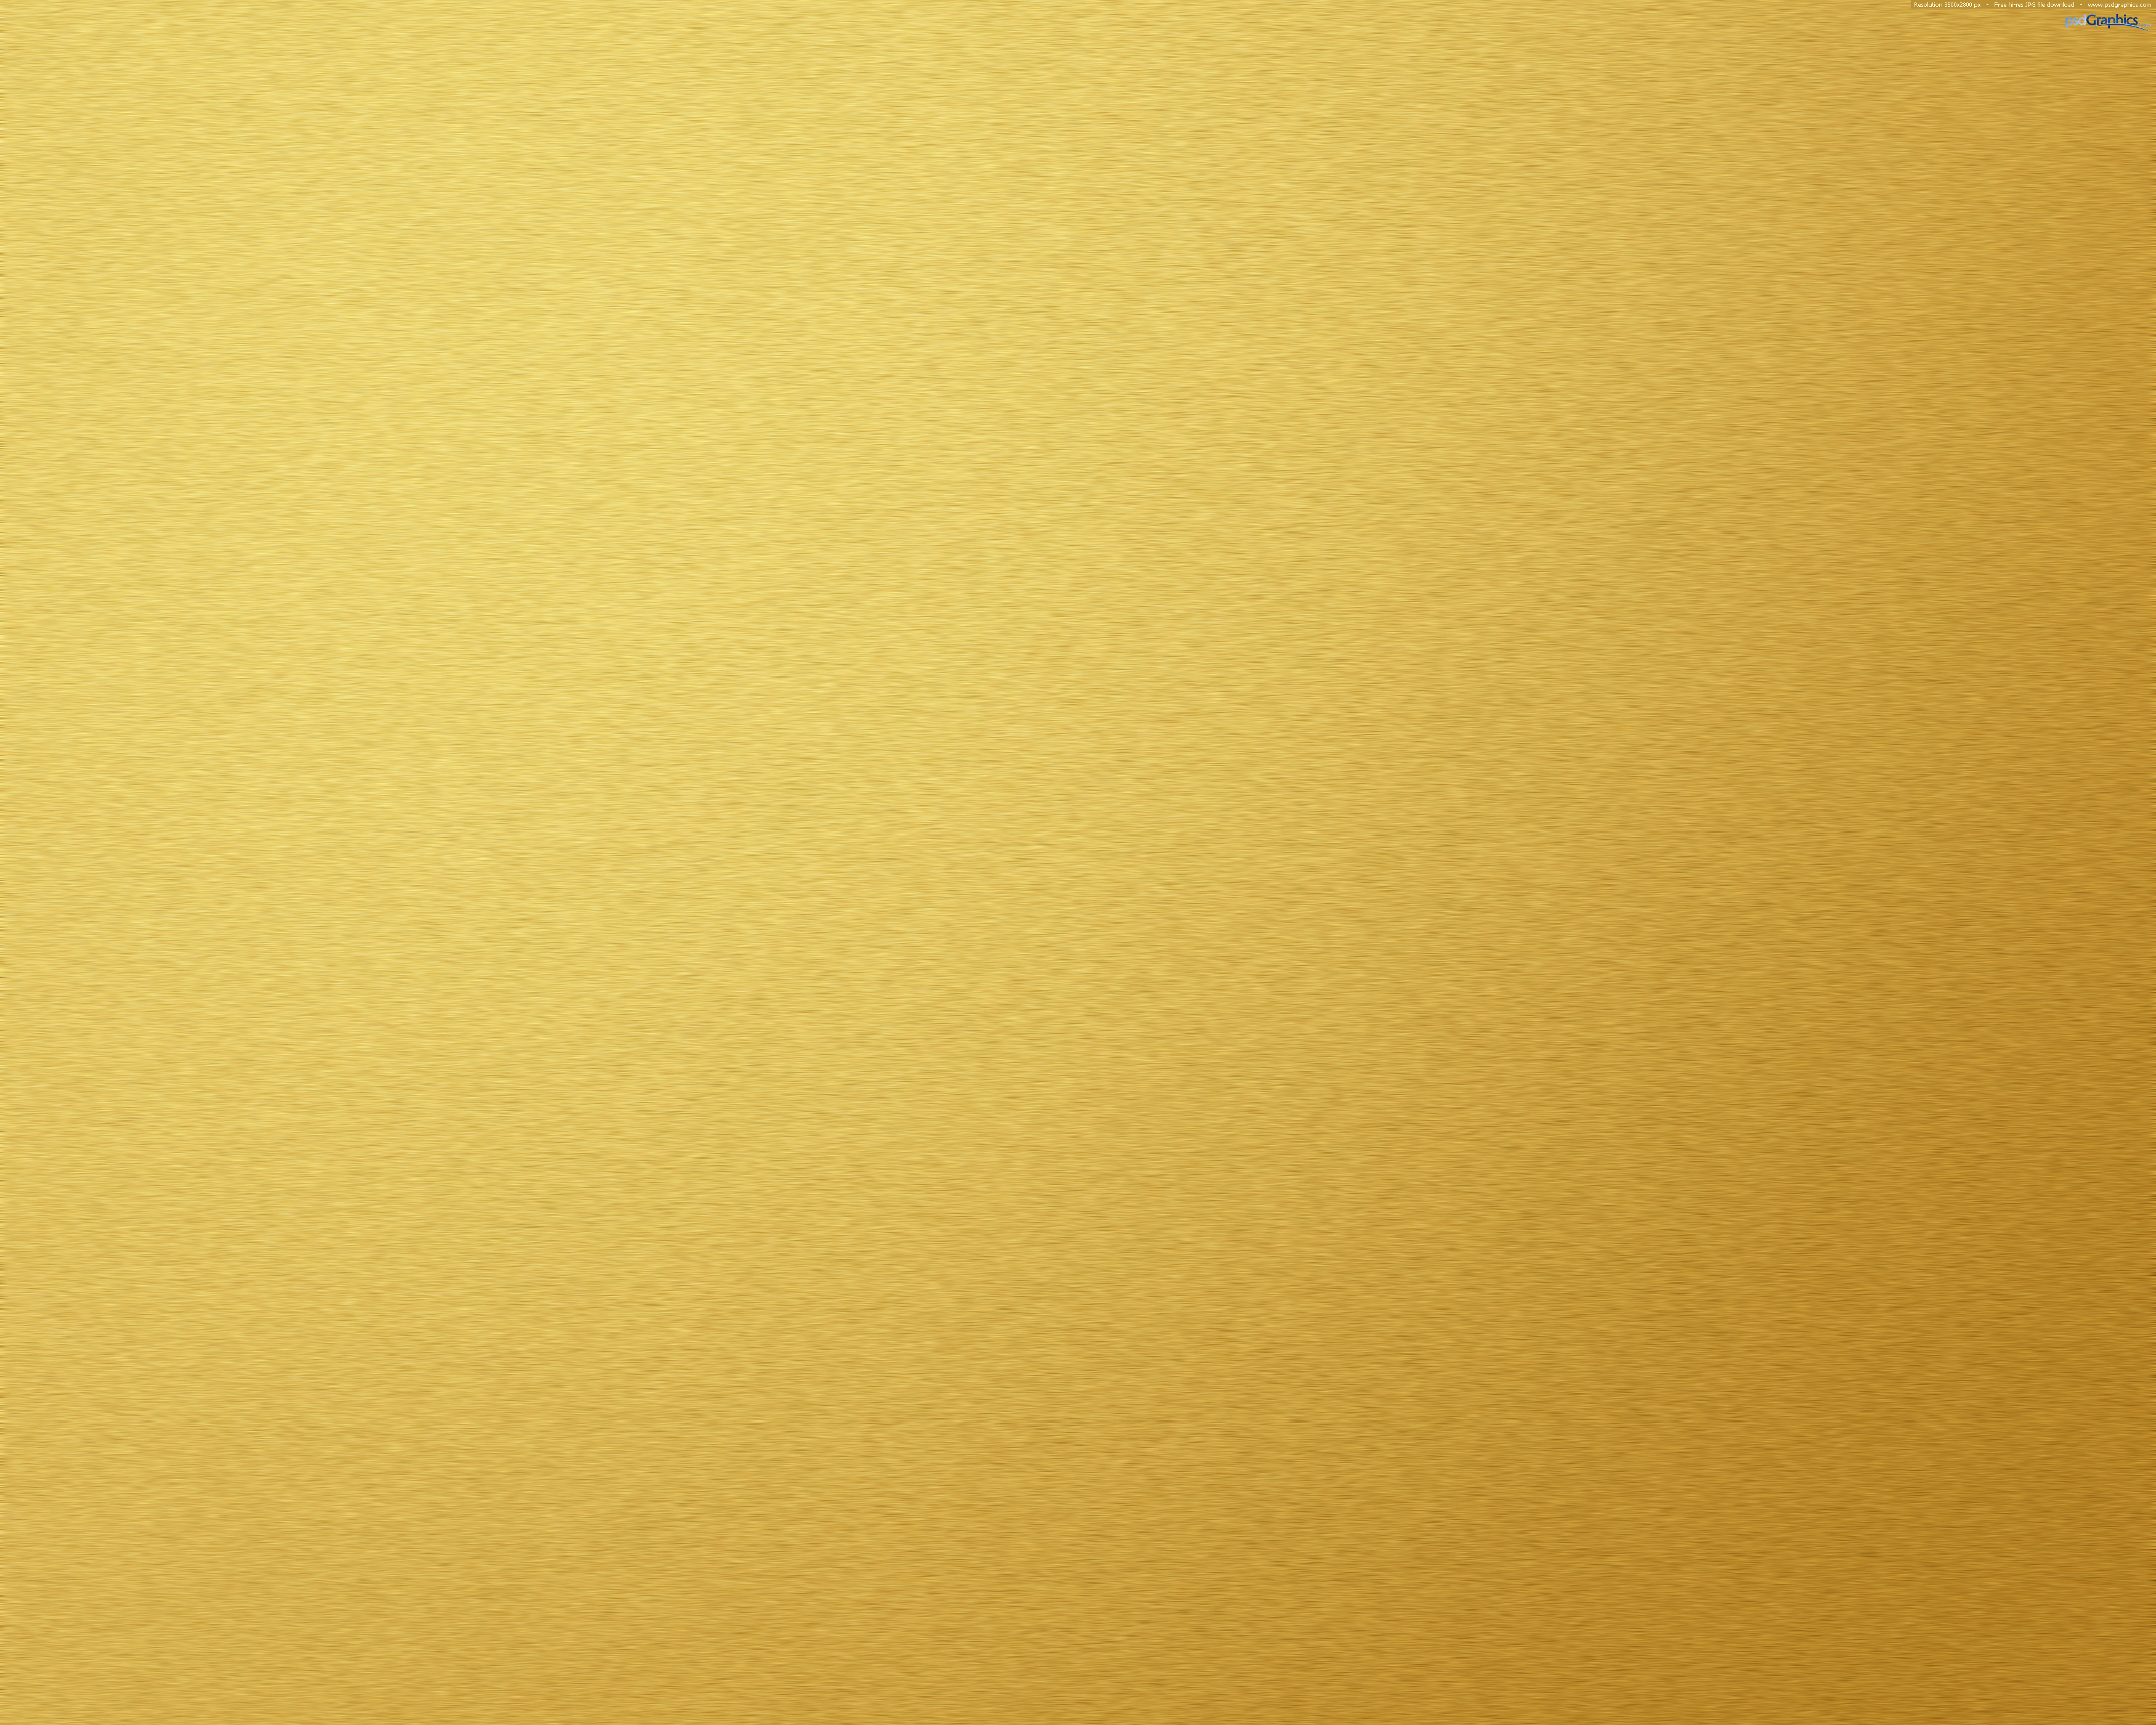 Images of Gold   3500x2800